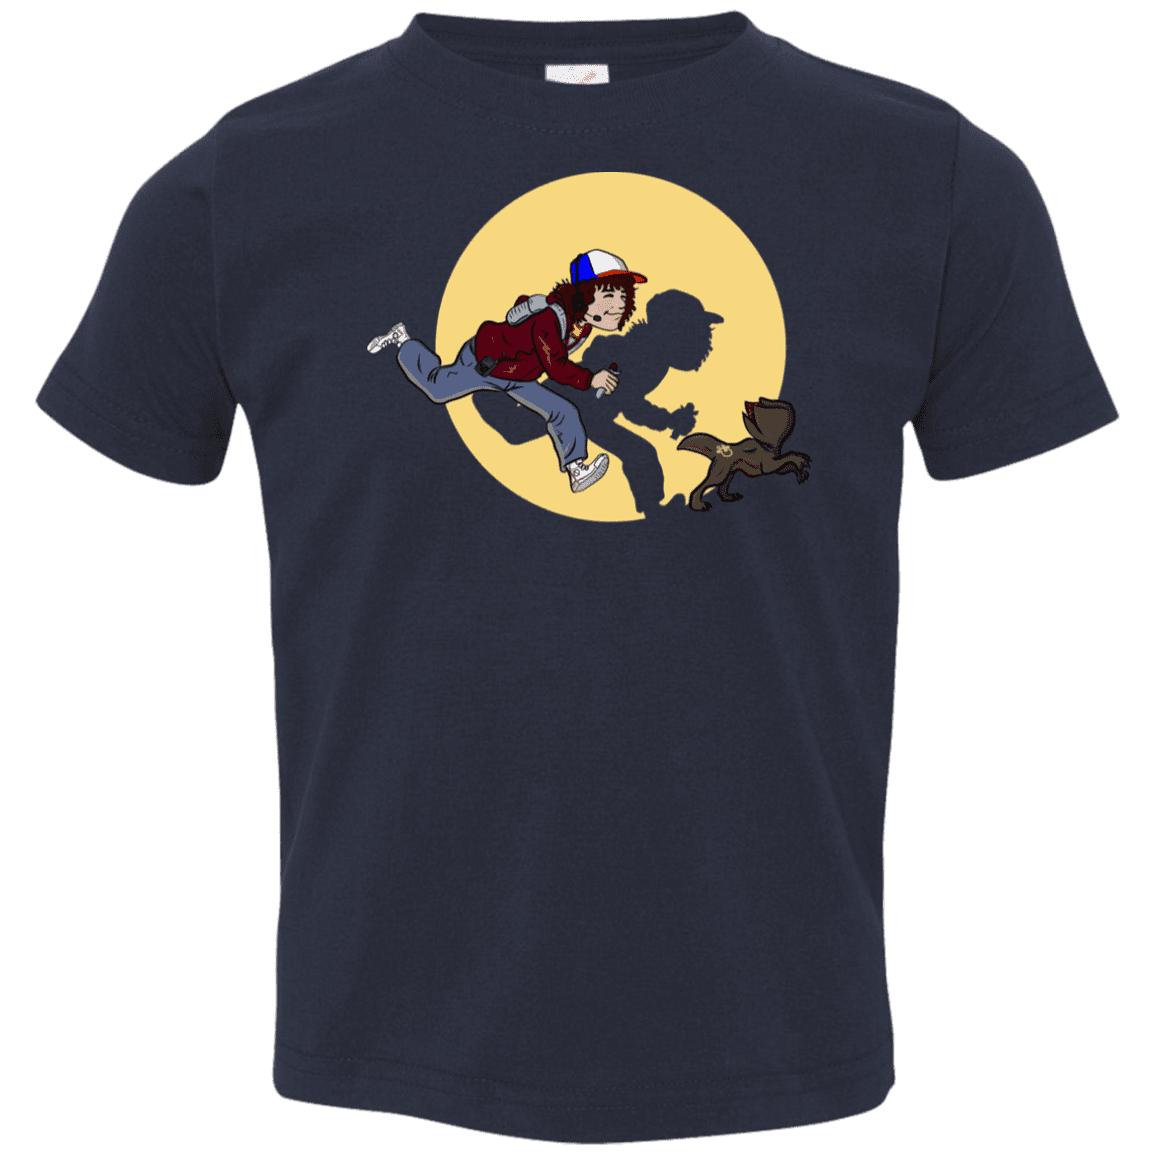 T-Shirts Navy / 2T The Adventures of Dustin Toddler Premium T-Shirt